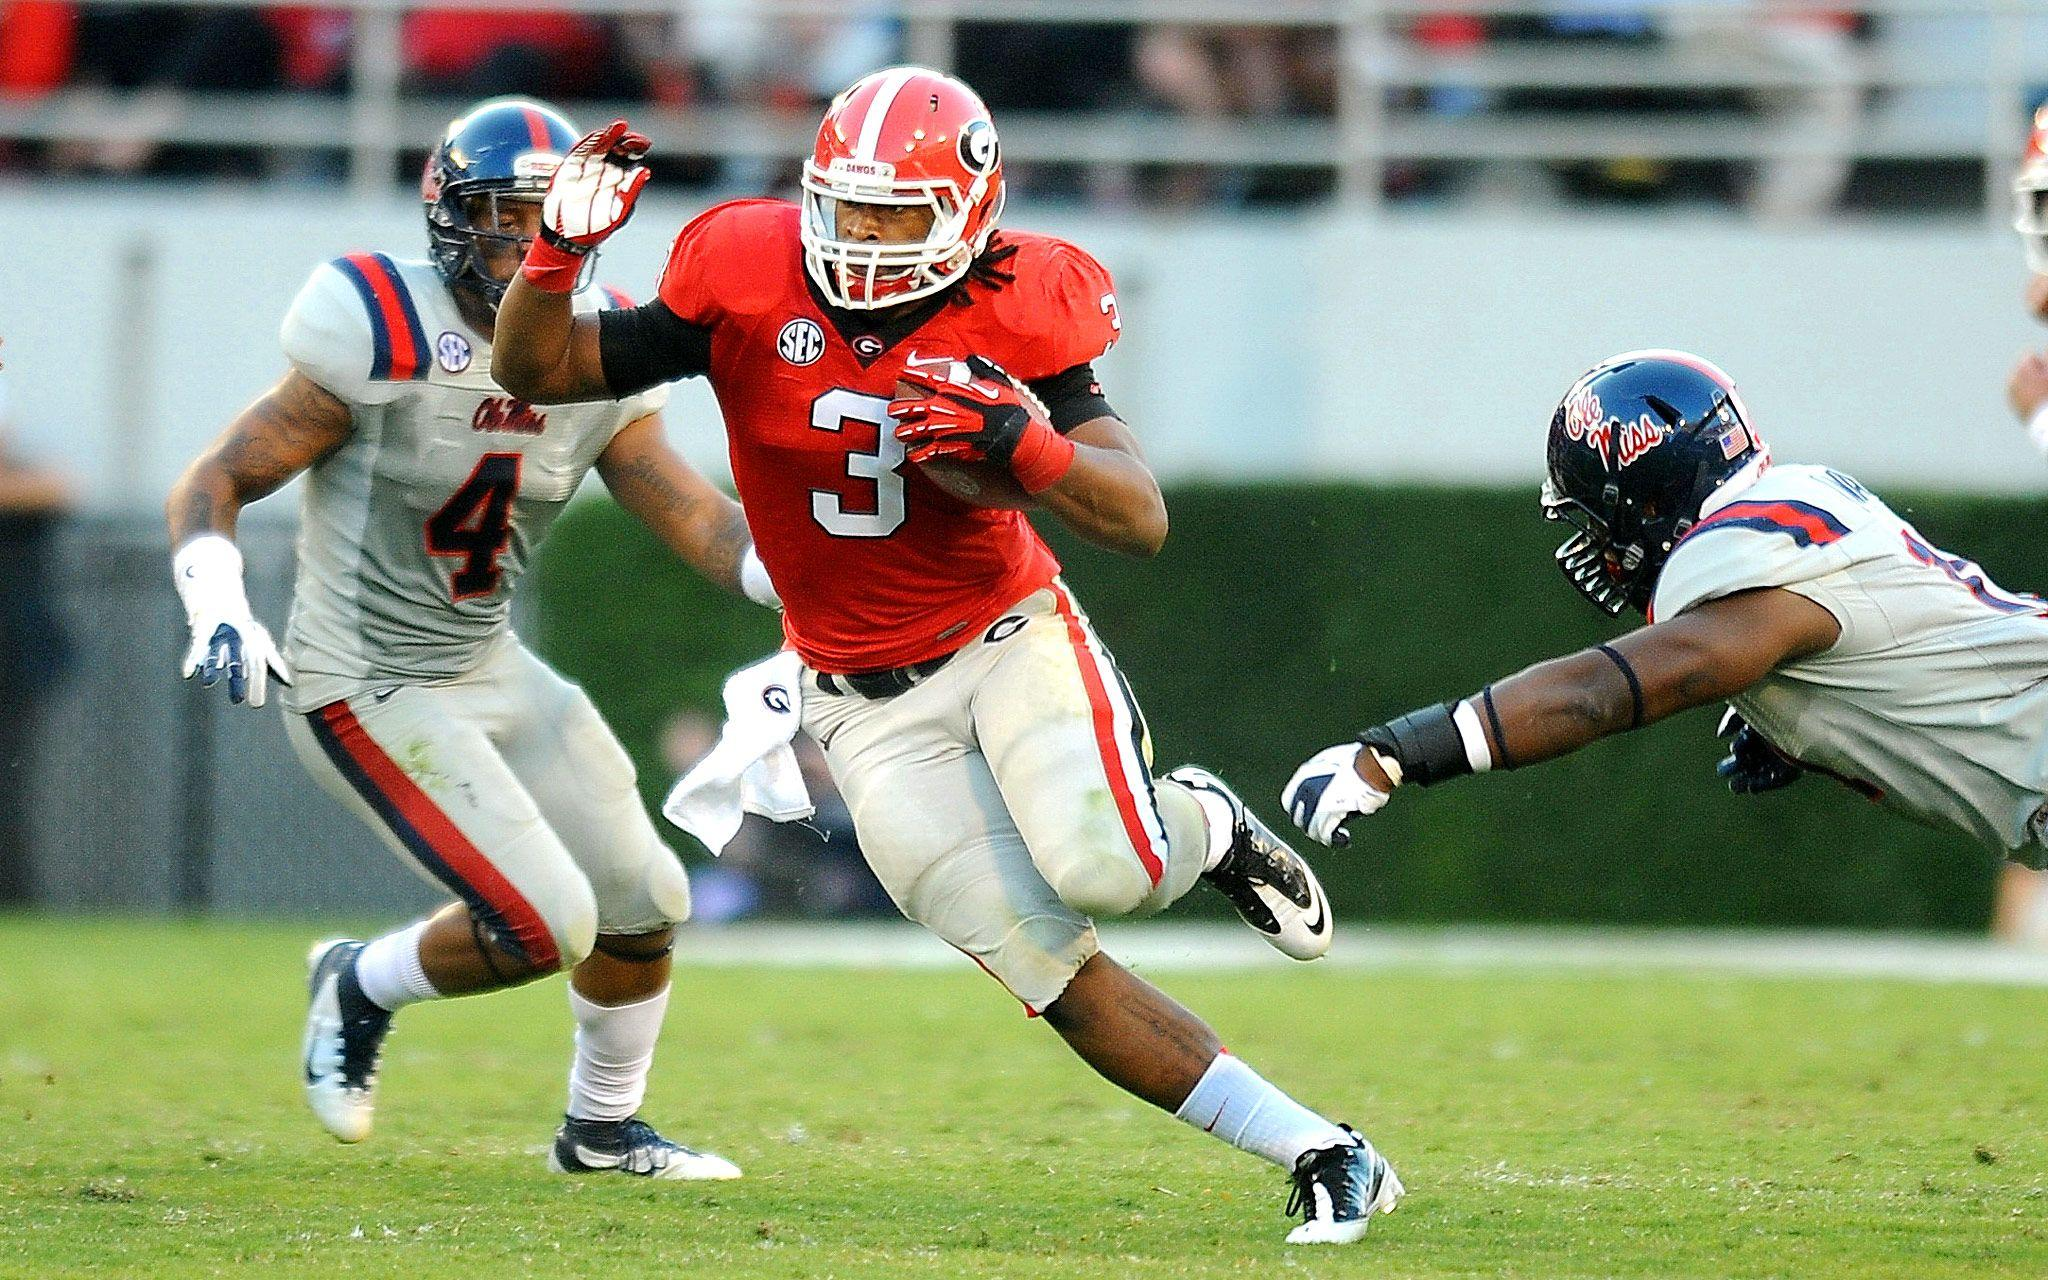 2015 NFL Draft Profile: Todd Gurley